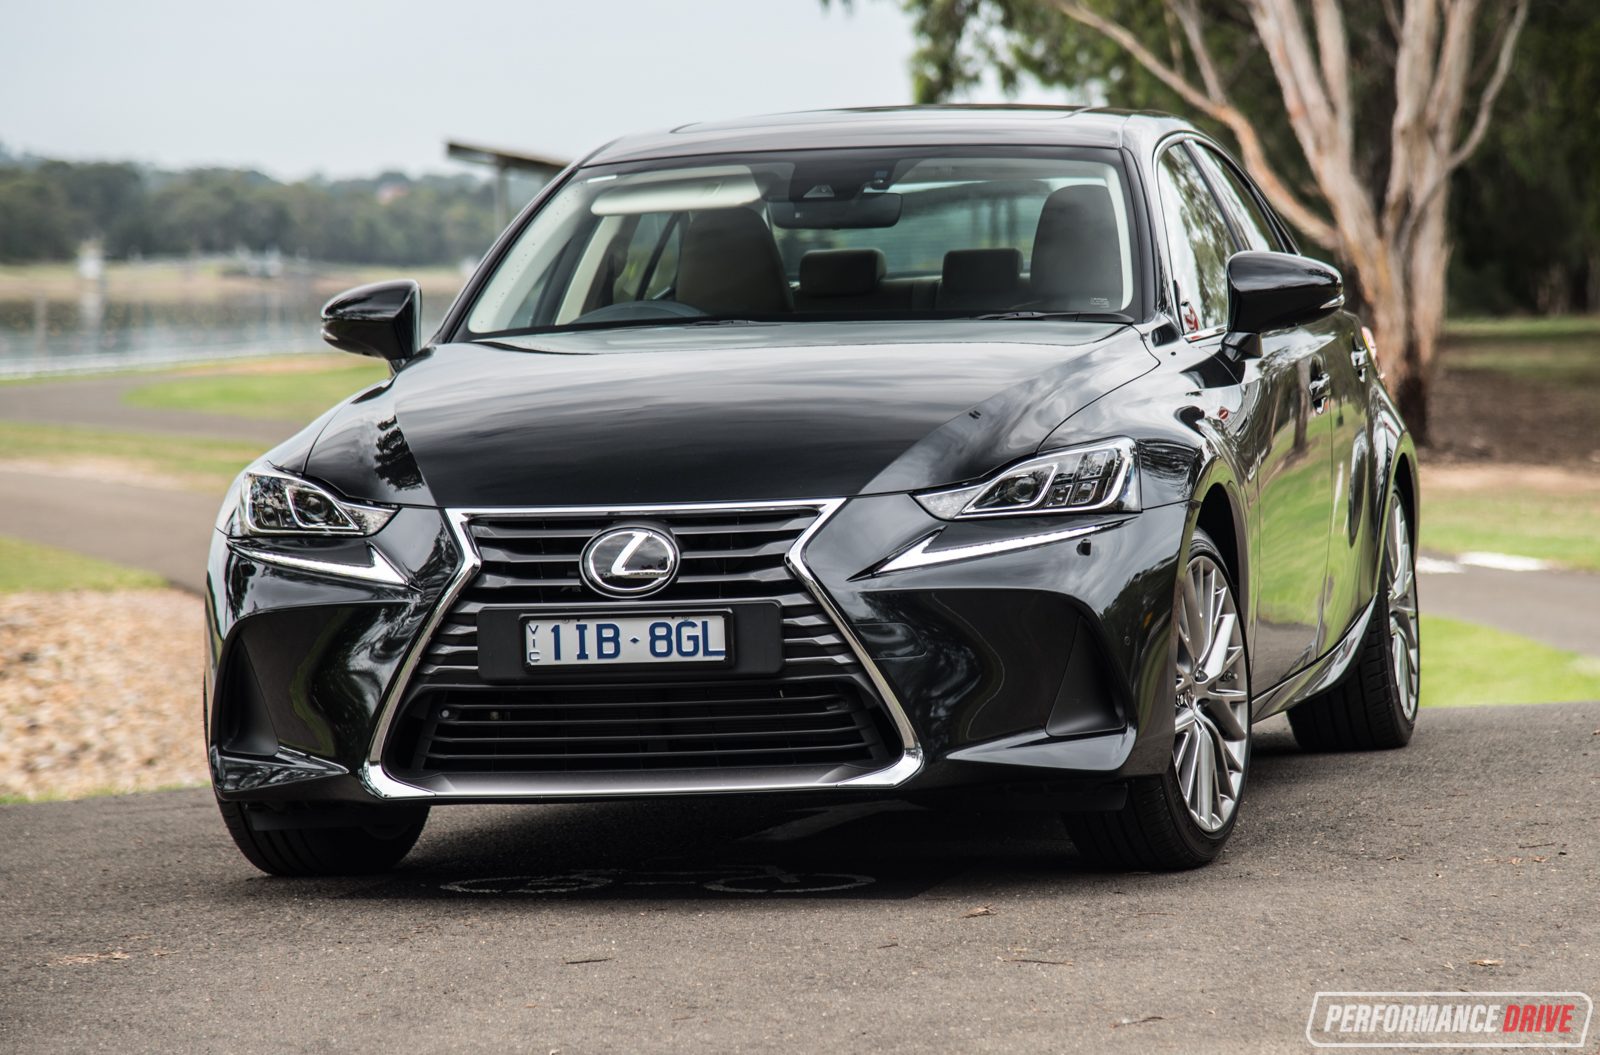 Build A Car From Scratch >> 2017 Lexus IS 200t Sports Luxury review (video ...